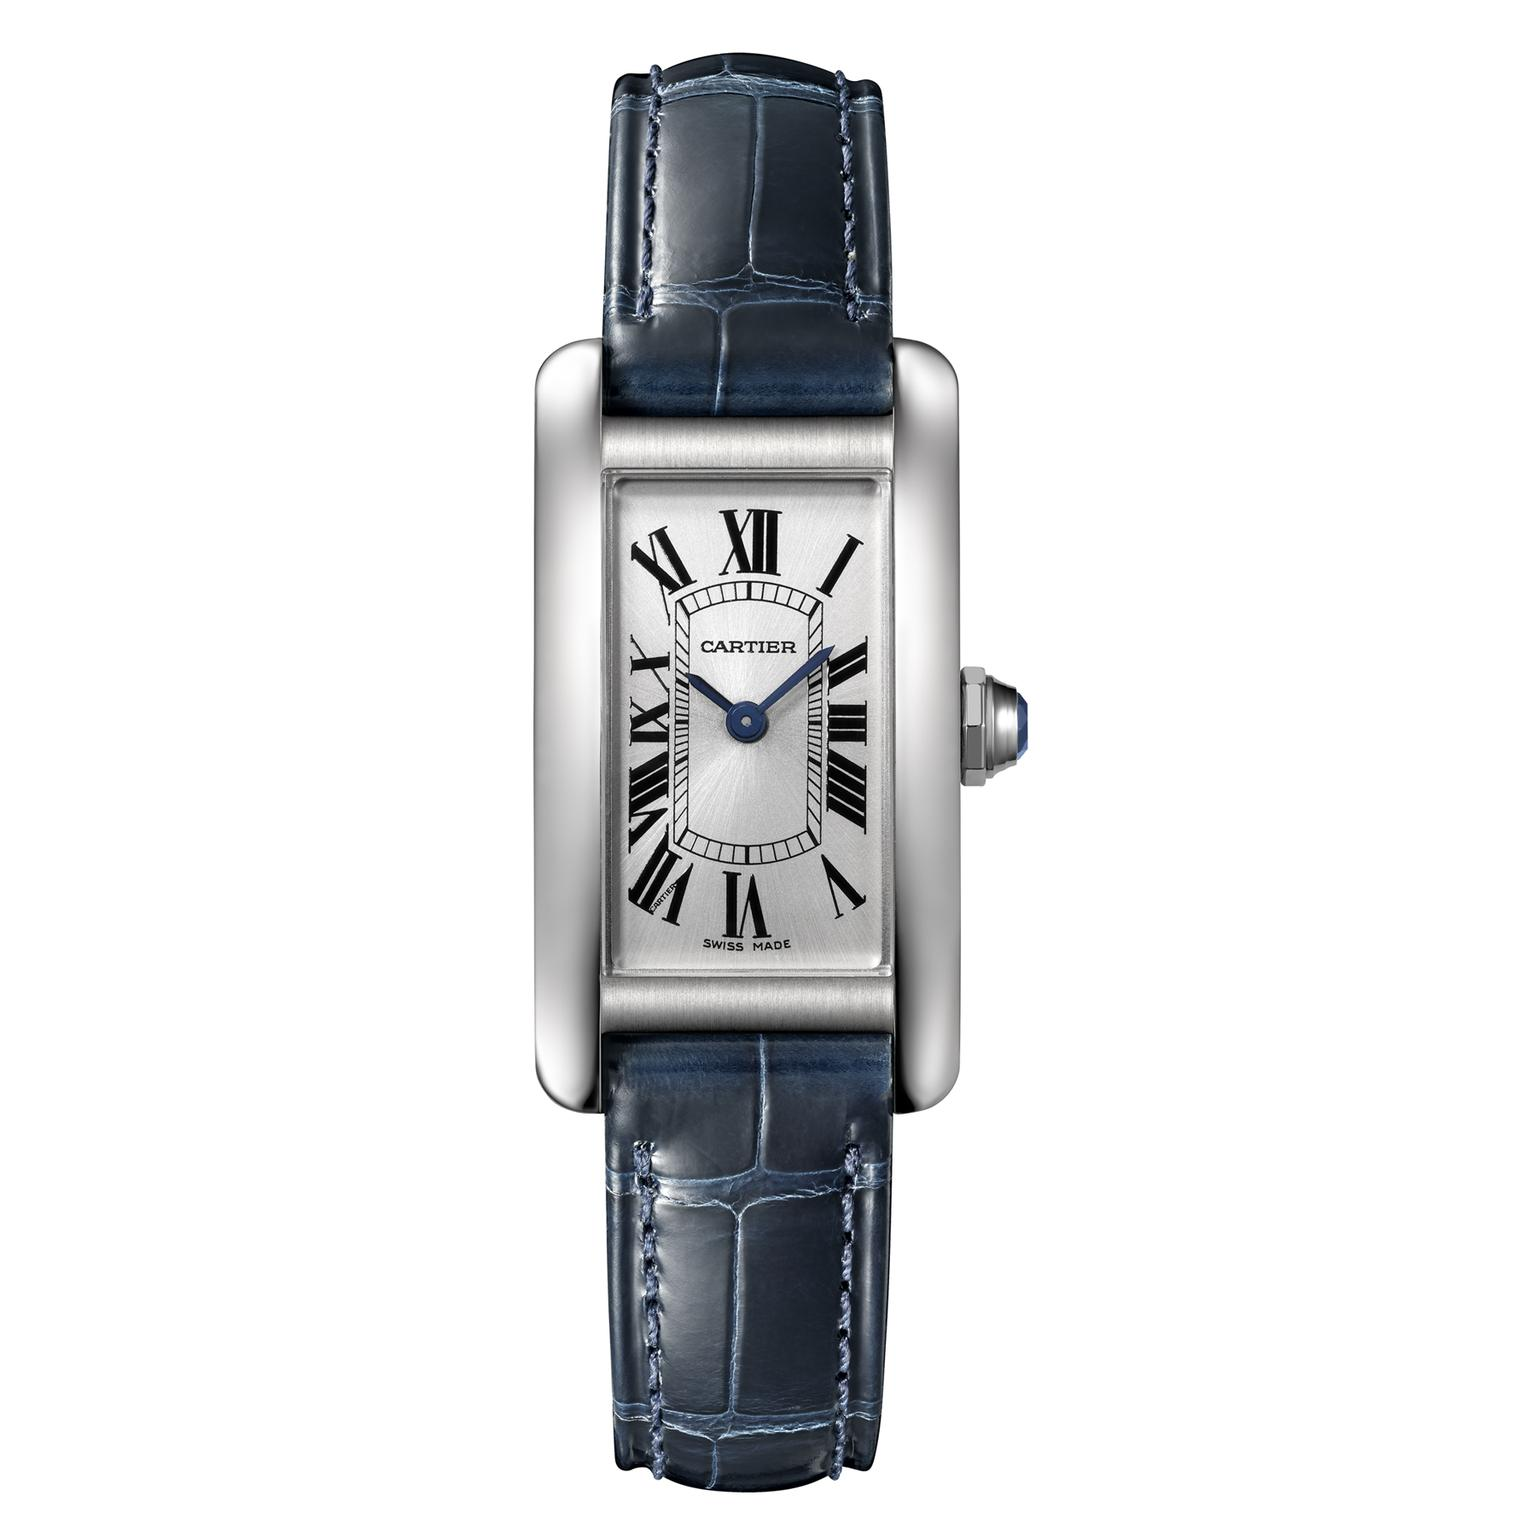 Cartier Tank Américaine small steel quartz